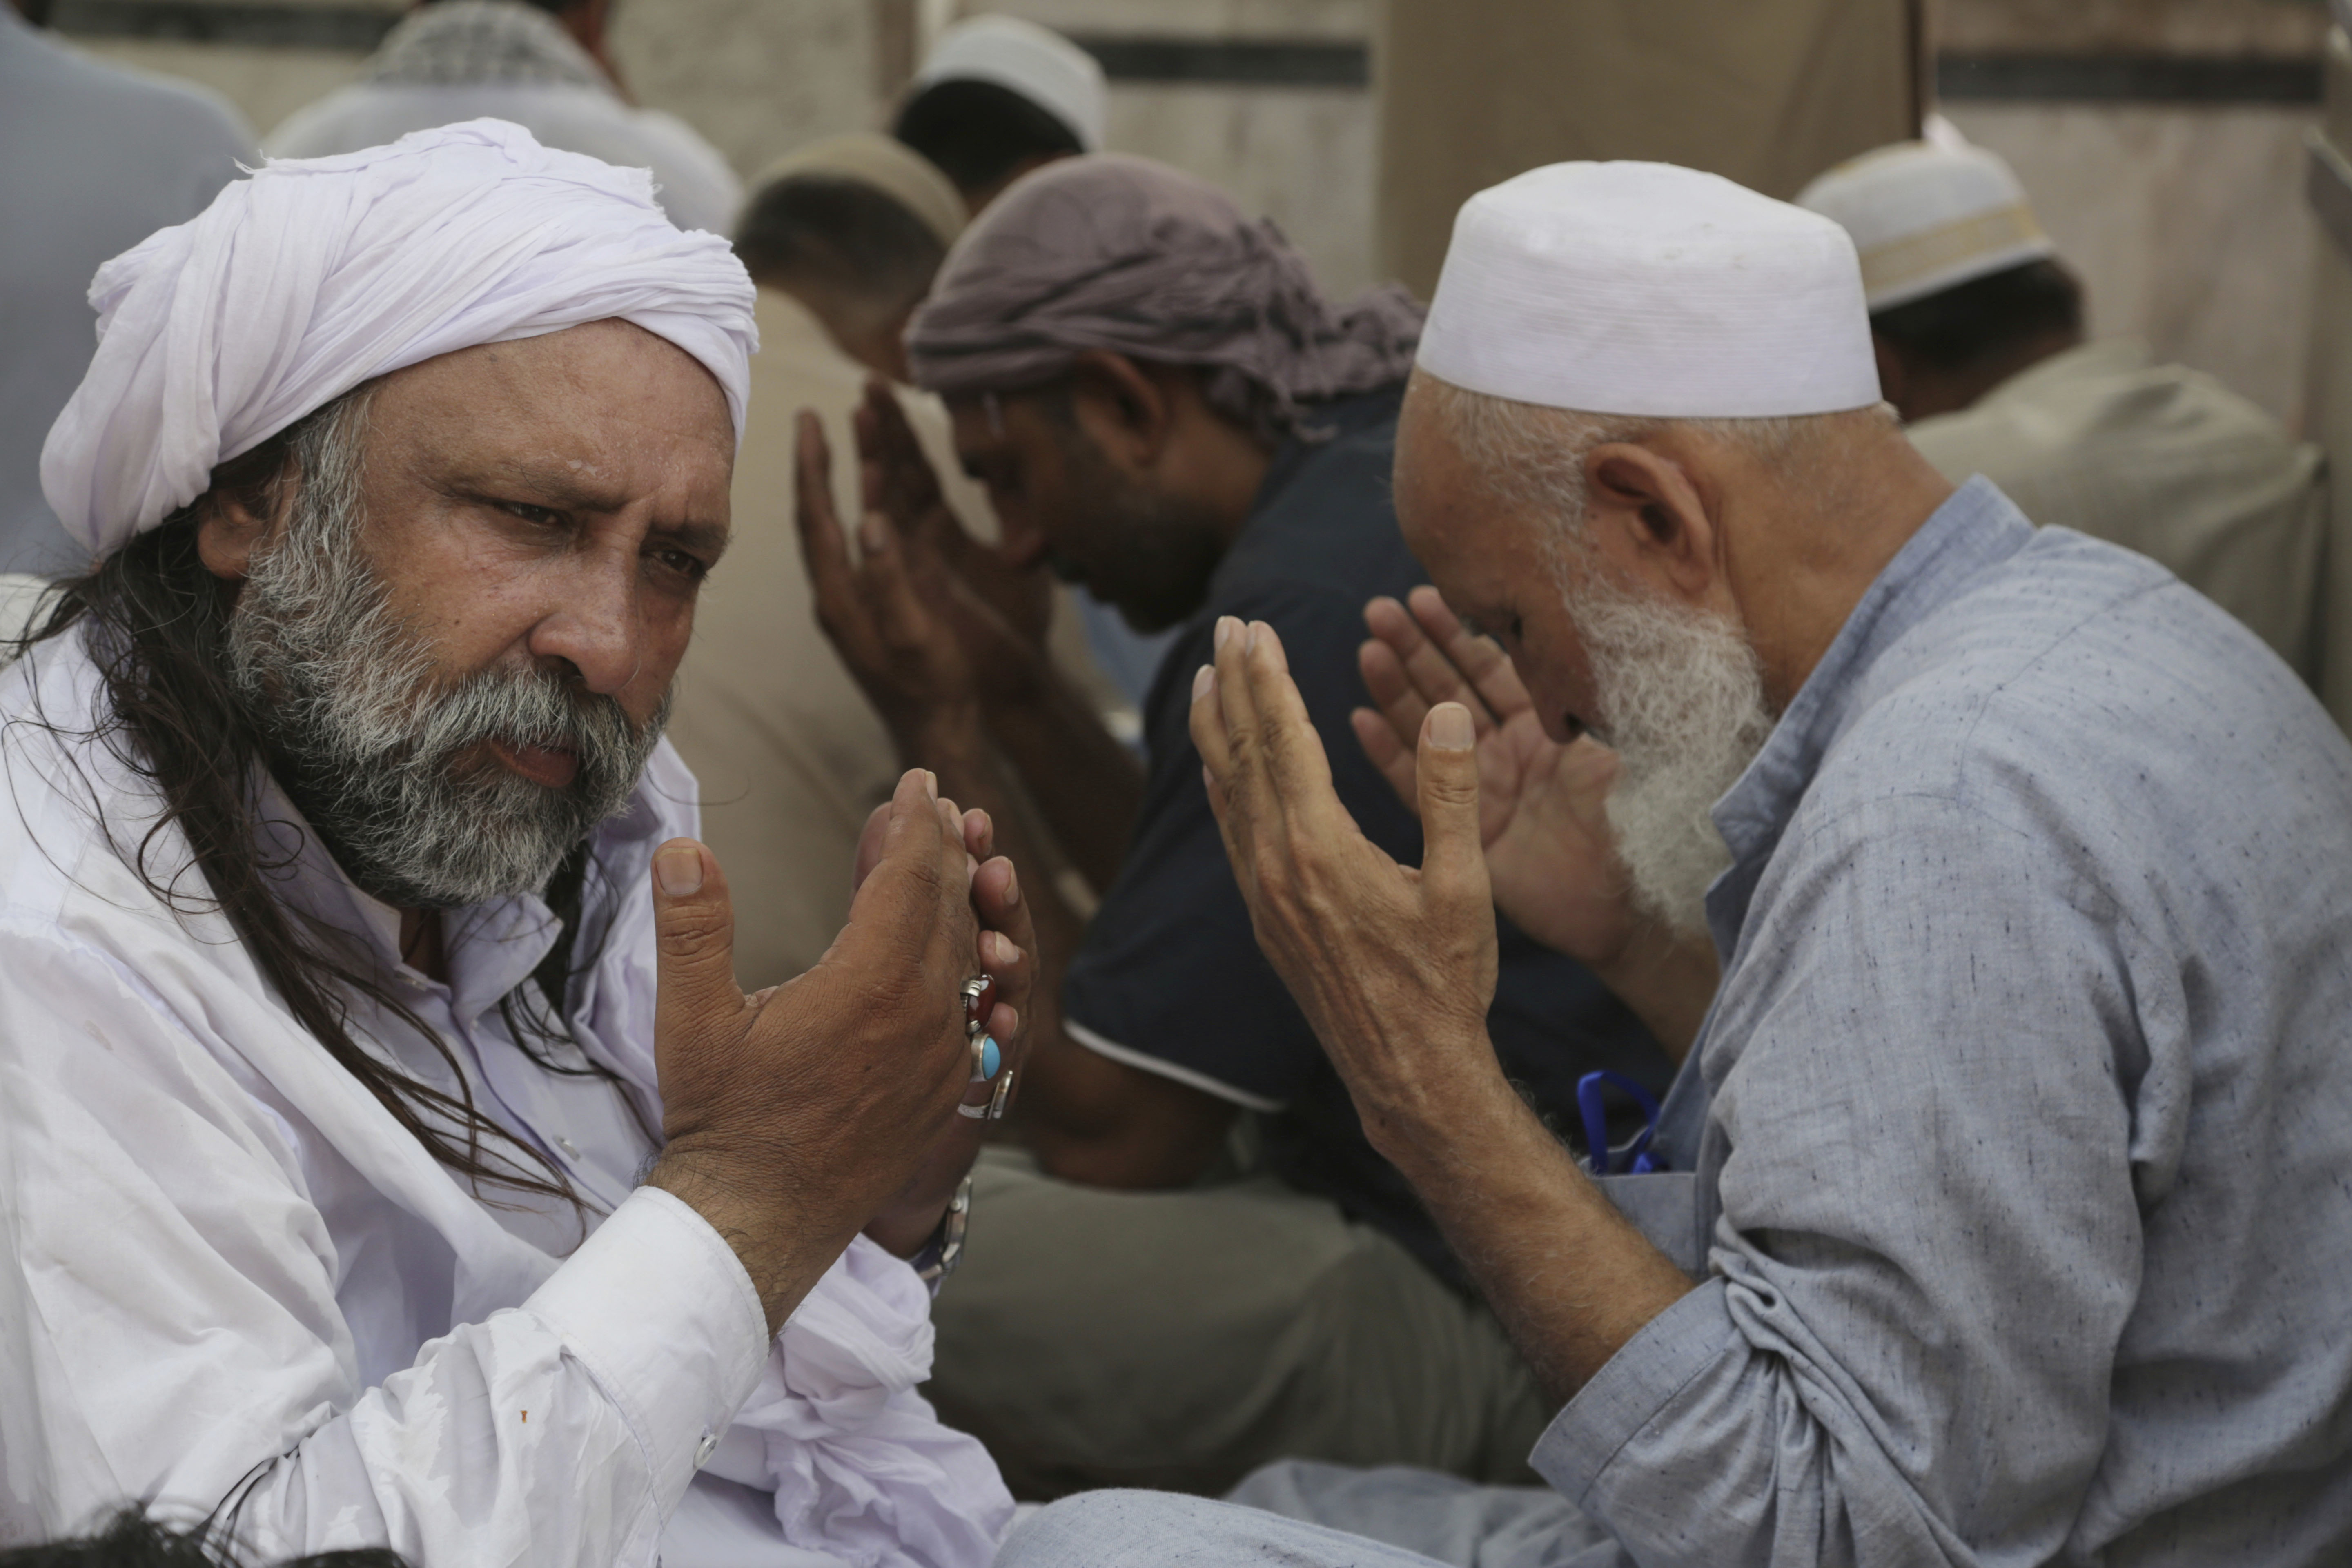 Pakistani Muslims take part in Friday prayers at Data Darbar Mosque during the holy fasting month of Ramadan, in Lahore, Pakistan, on June 16, 2017.